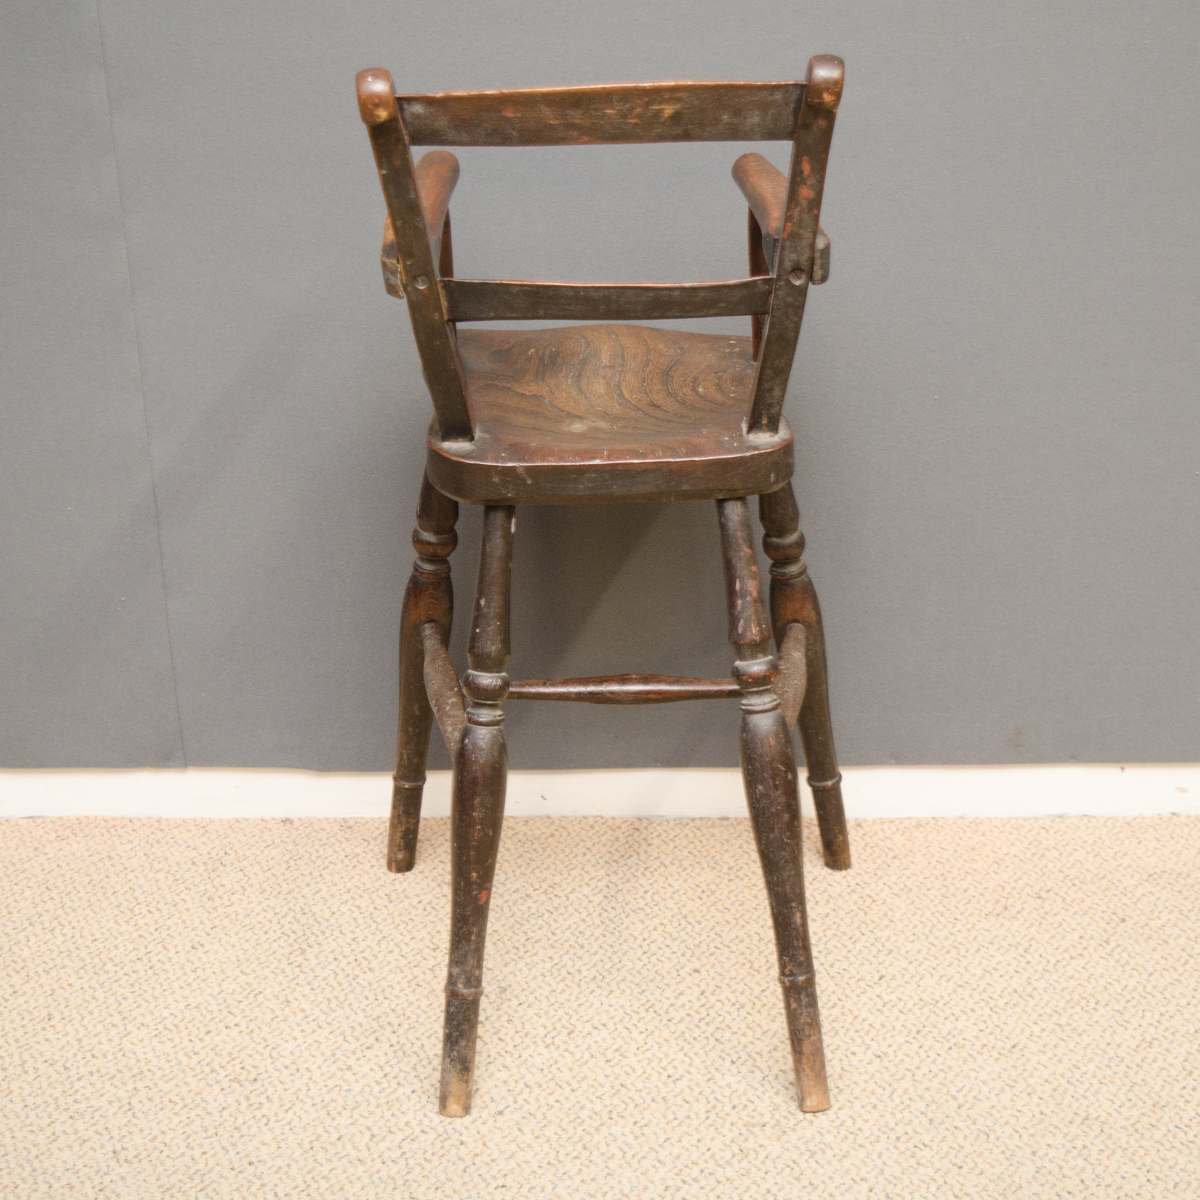 Antique Country Childs High Chair - Antique Country Childs High Chair - Antique Chairs - Hemswell